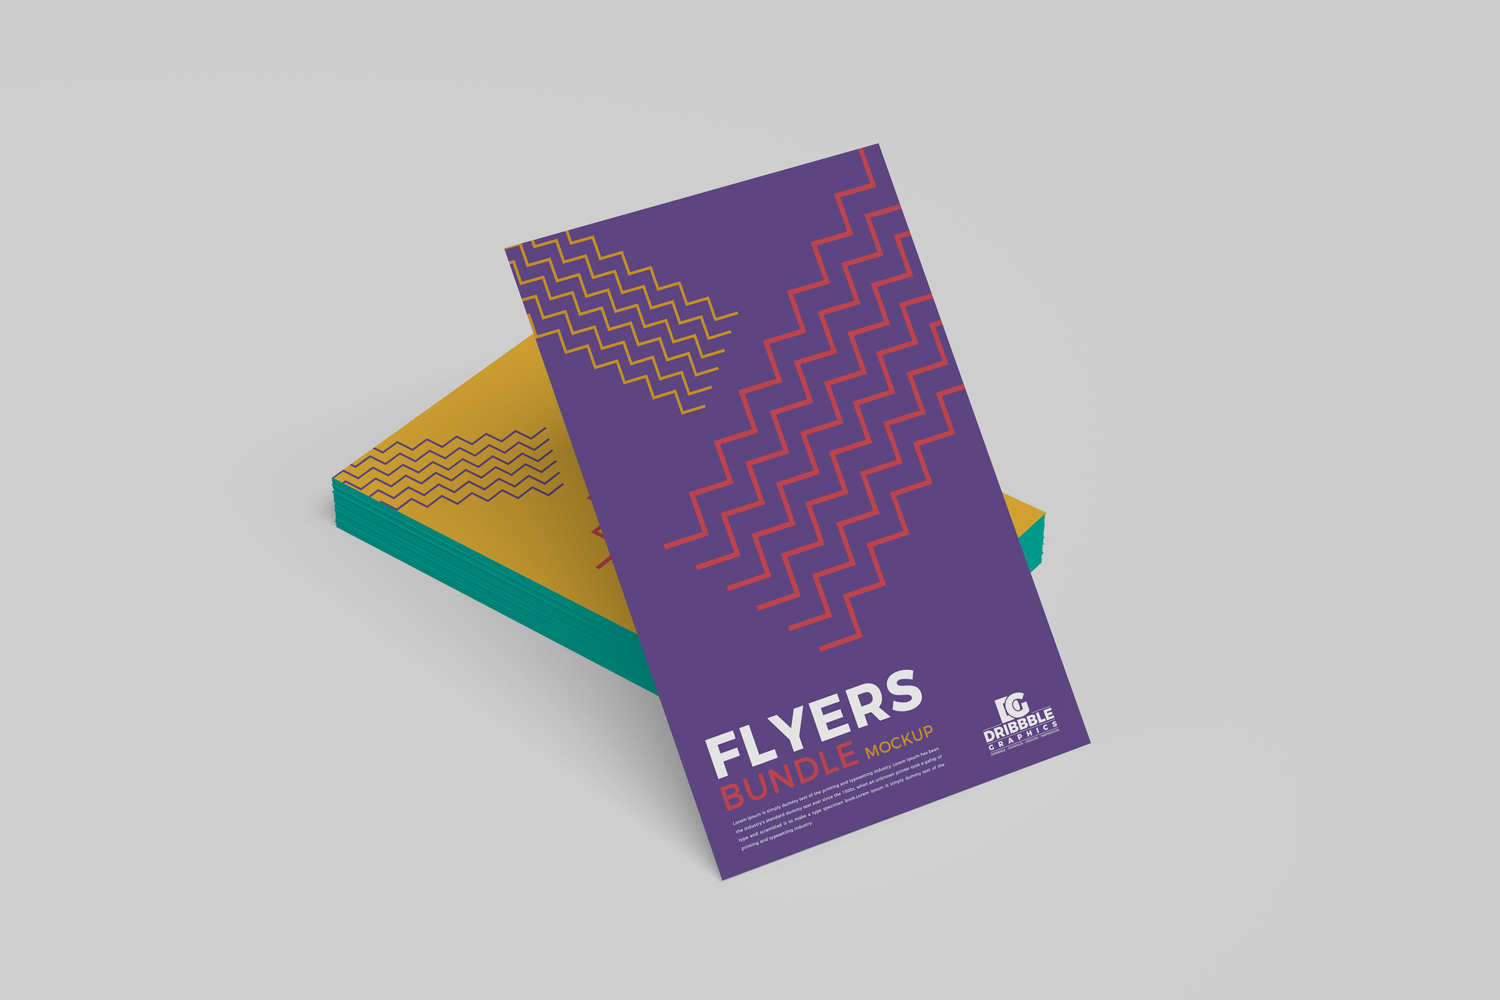 Free-Flyers-Bundle-Mockup-PSD-For-Branding-3